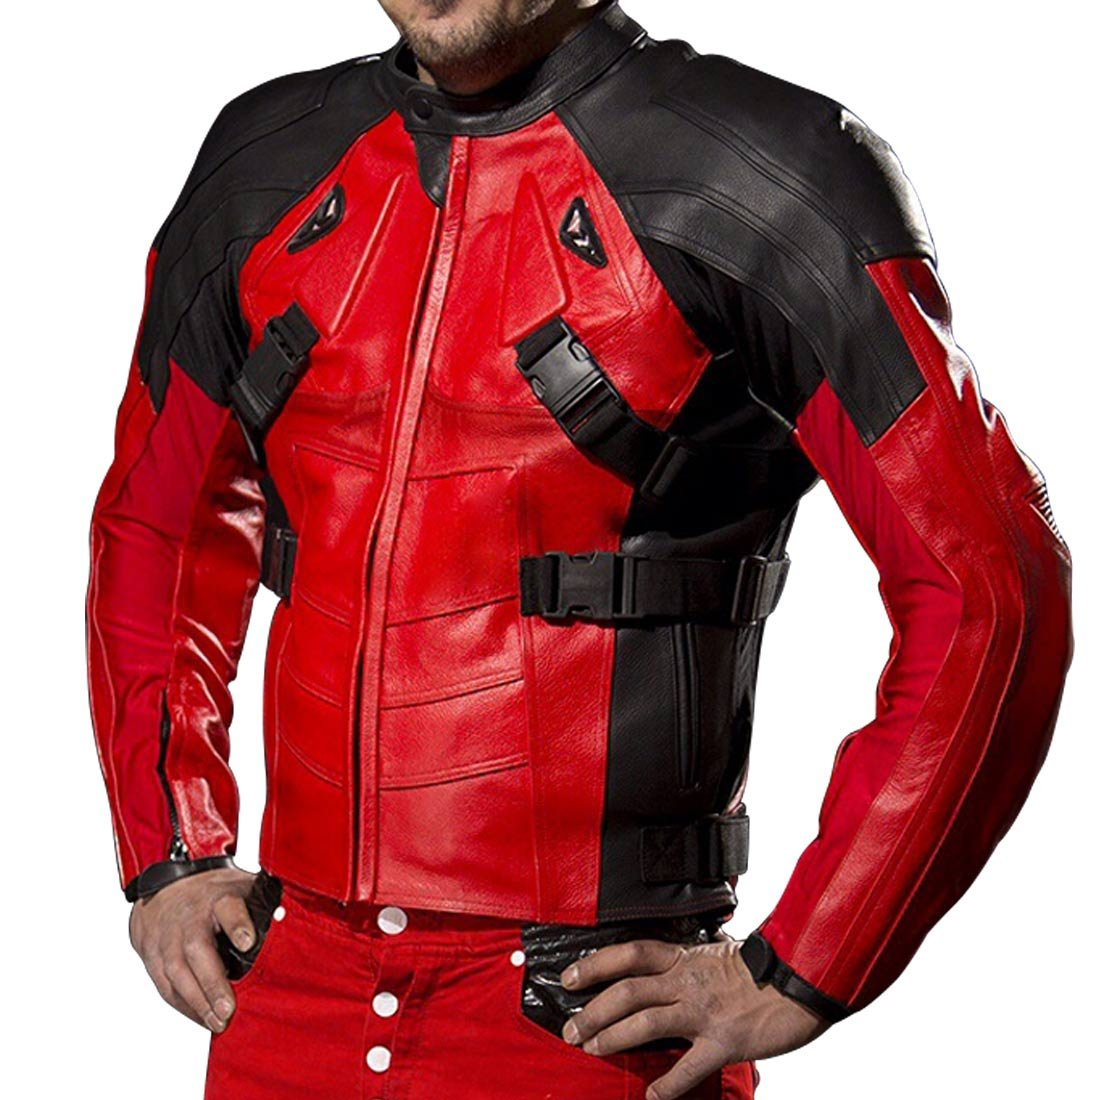 Deadpool Motorcycle Black and Red Ryan Reynolds Biker Paded Mens Leather Jacket The Custom Jacket